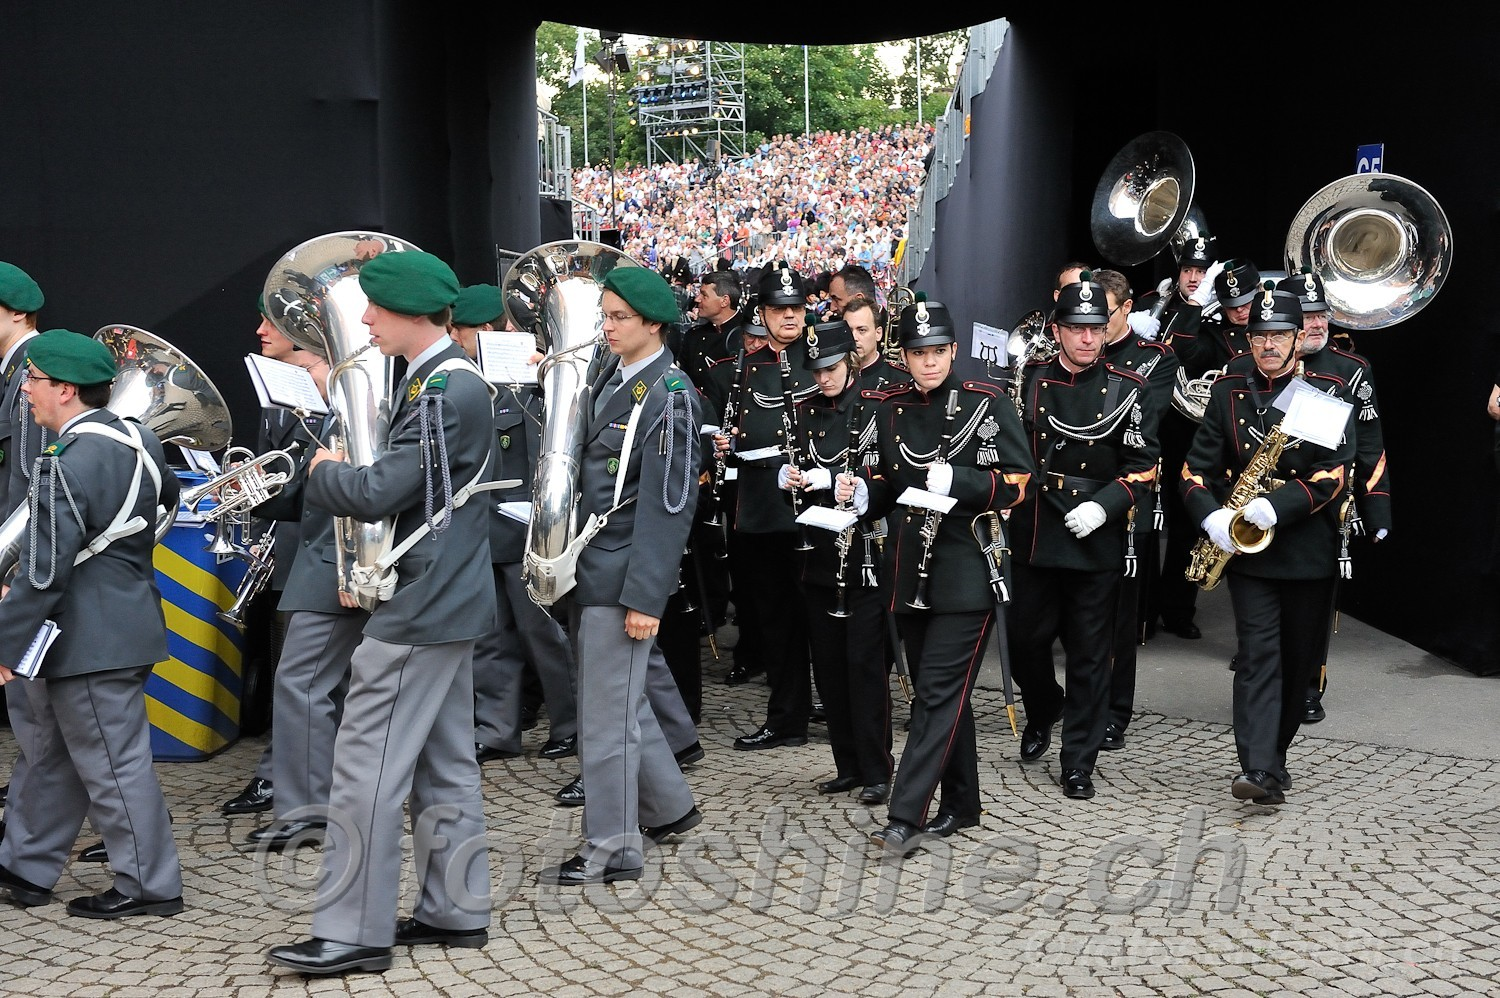 Basel Tattoo_090723_195128